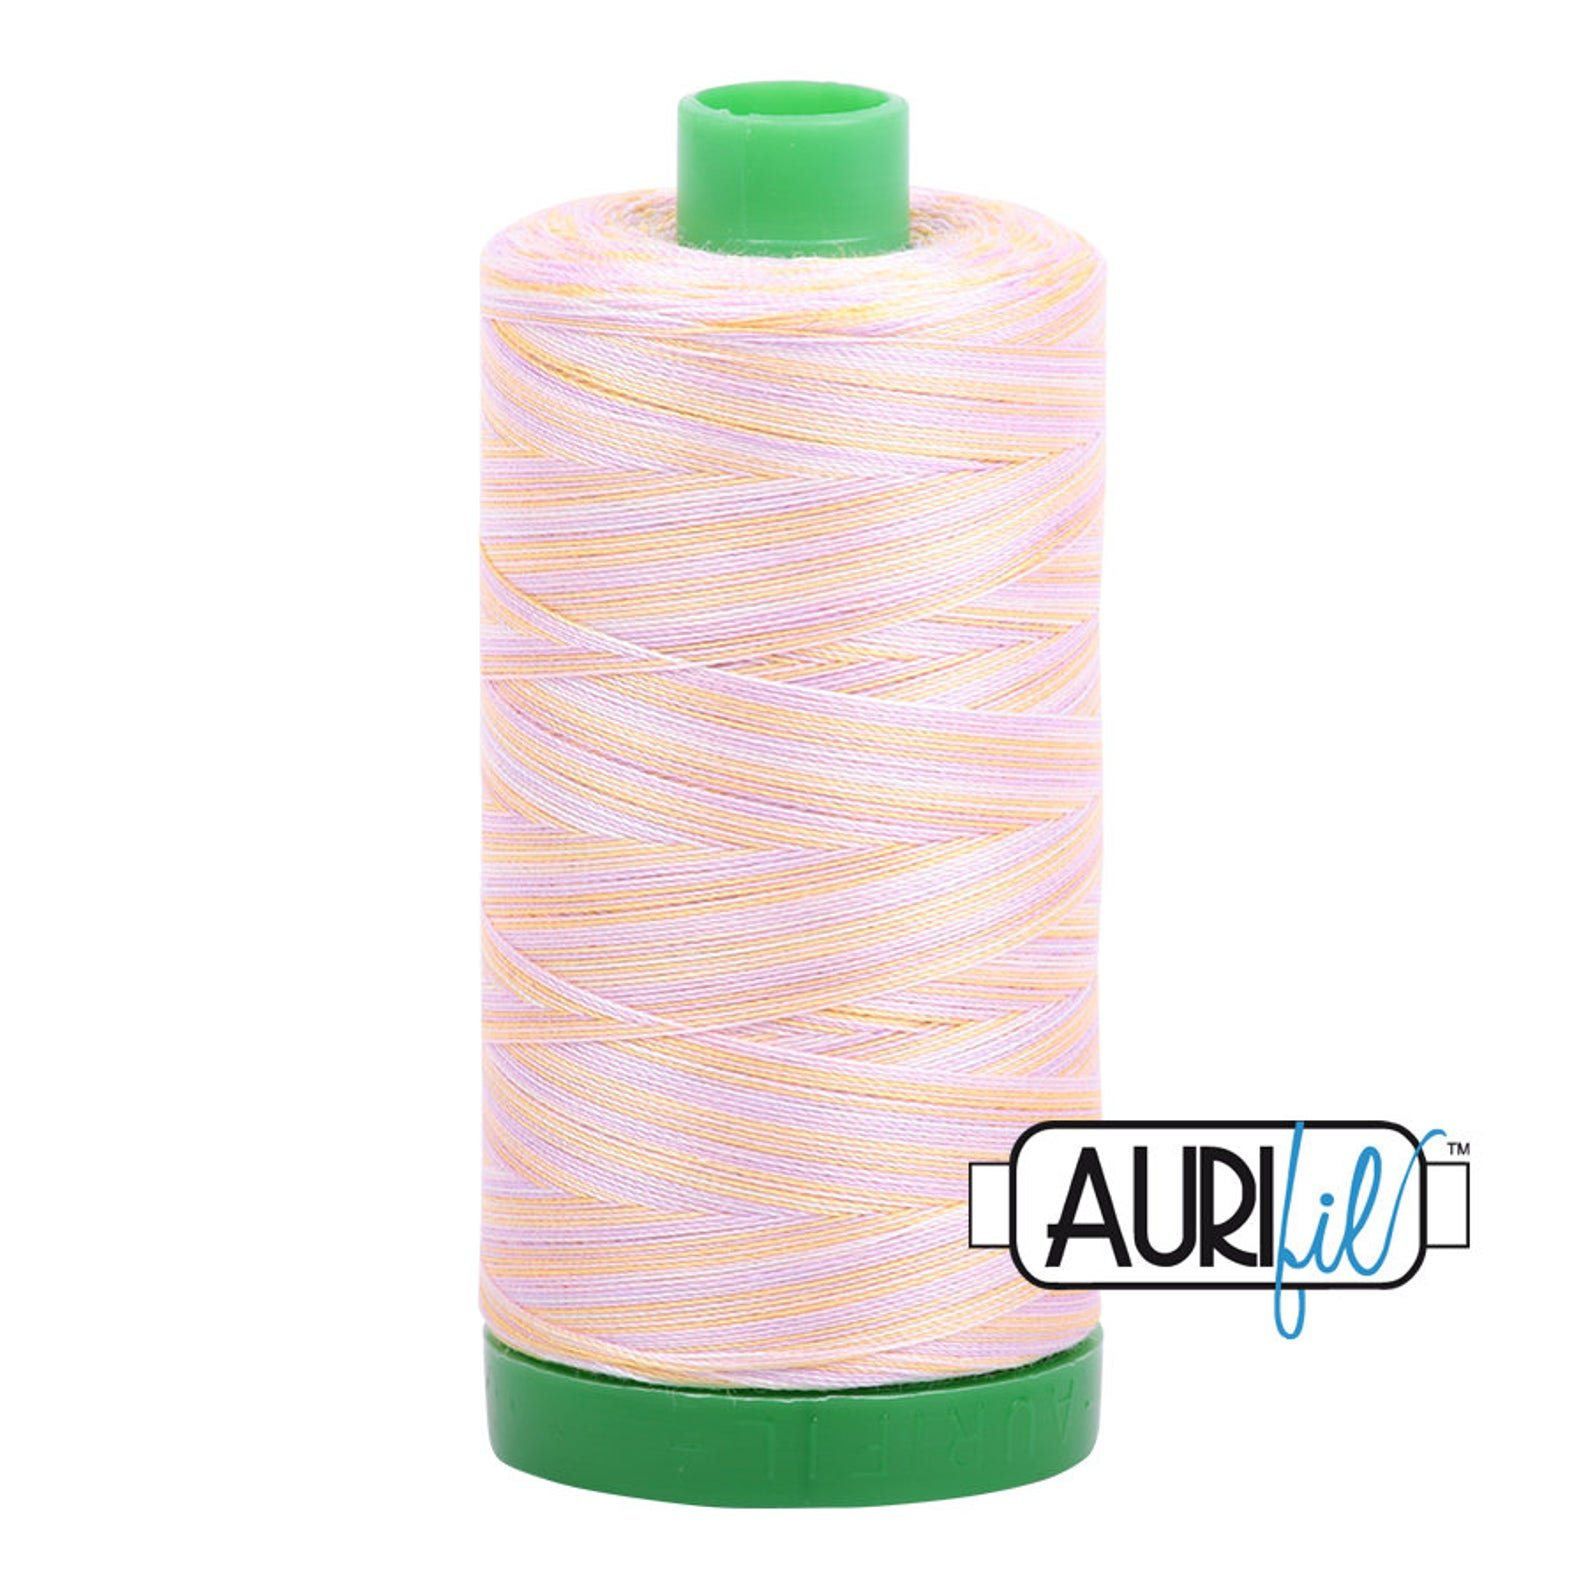 Aurifil Mako Cotton Embroidery Thread 40 wt. - 1094 yds. - 4651 Variegated Bari